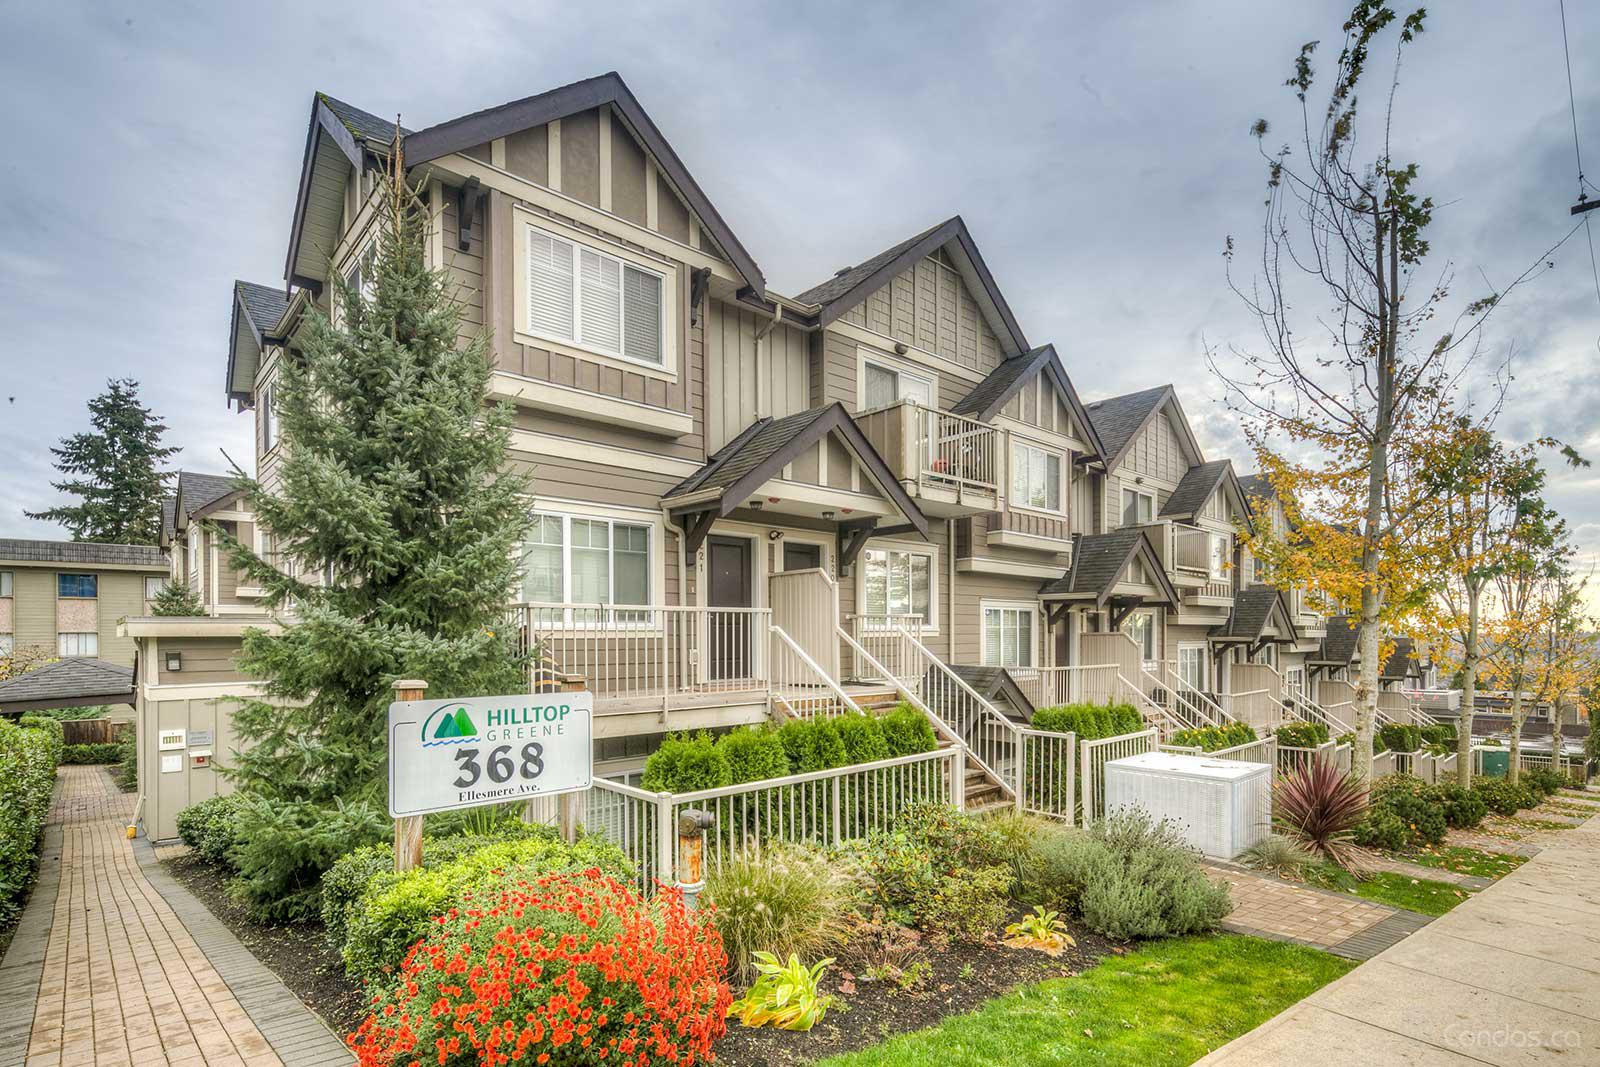 Hilltop Greene at 368 Ellesmere Ave, Burnaby 0